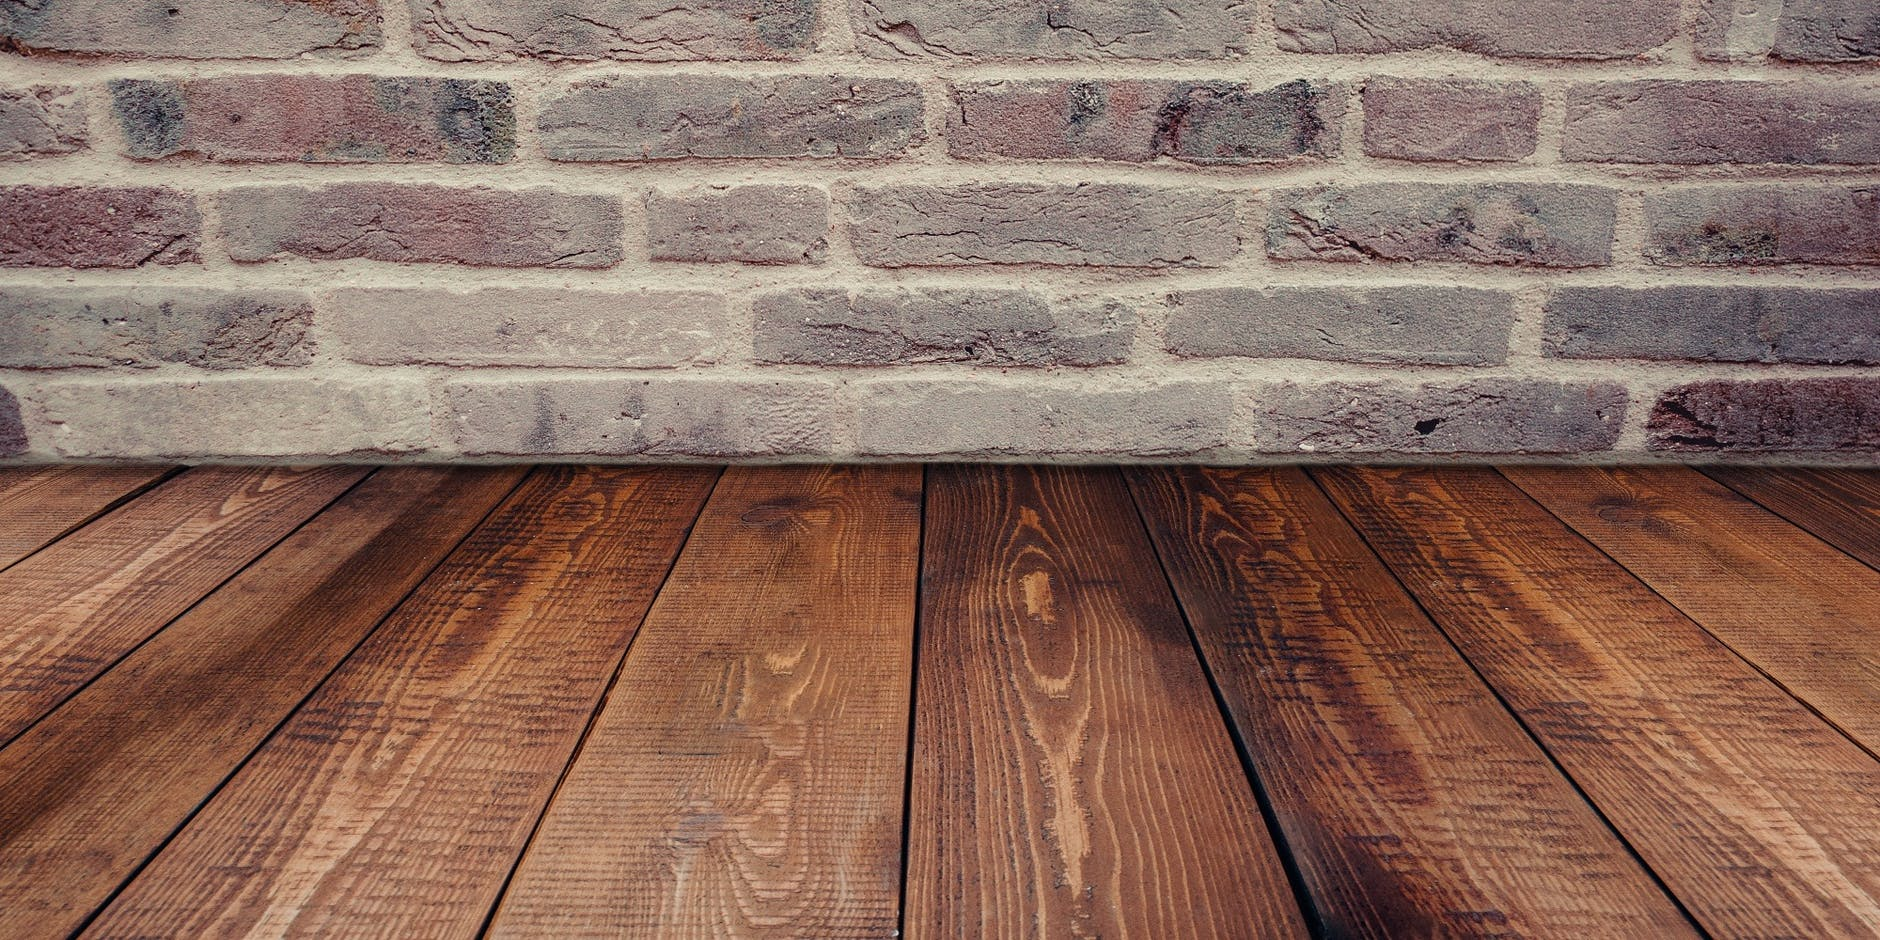 reclaimed wooden planks on floor with brick wall